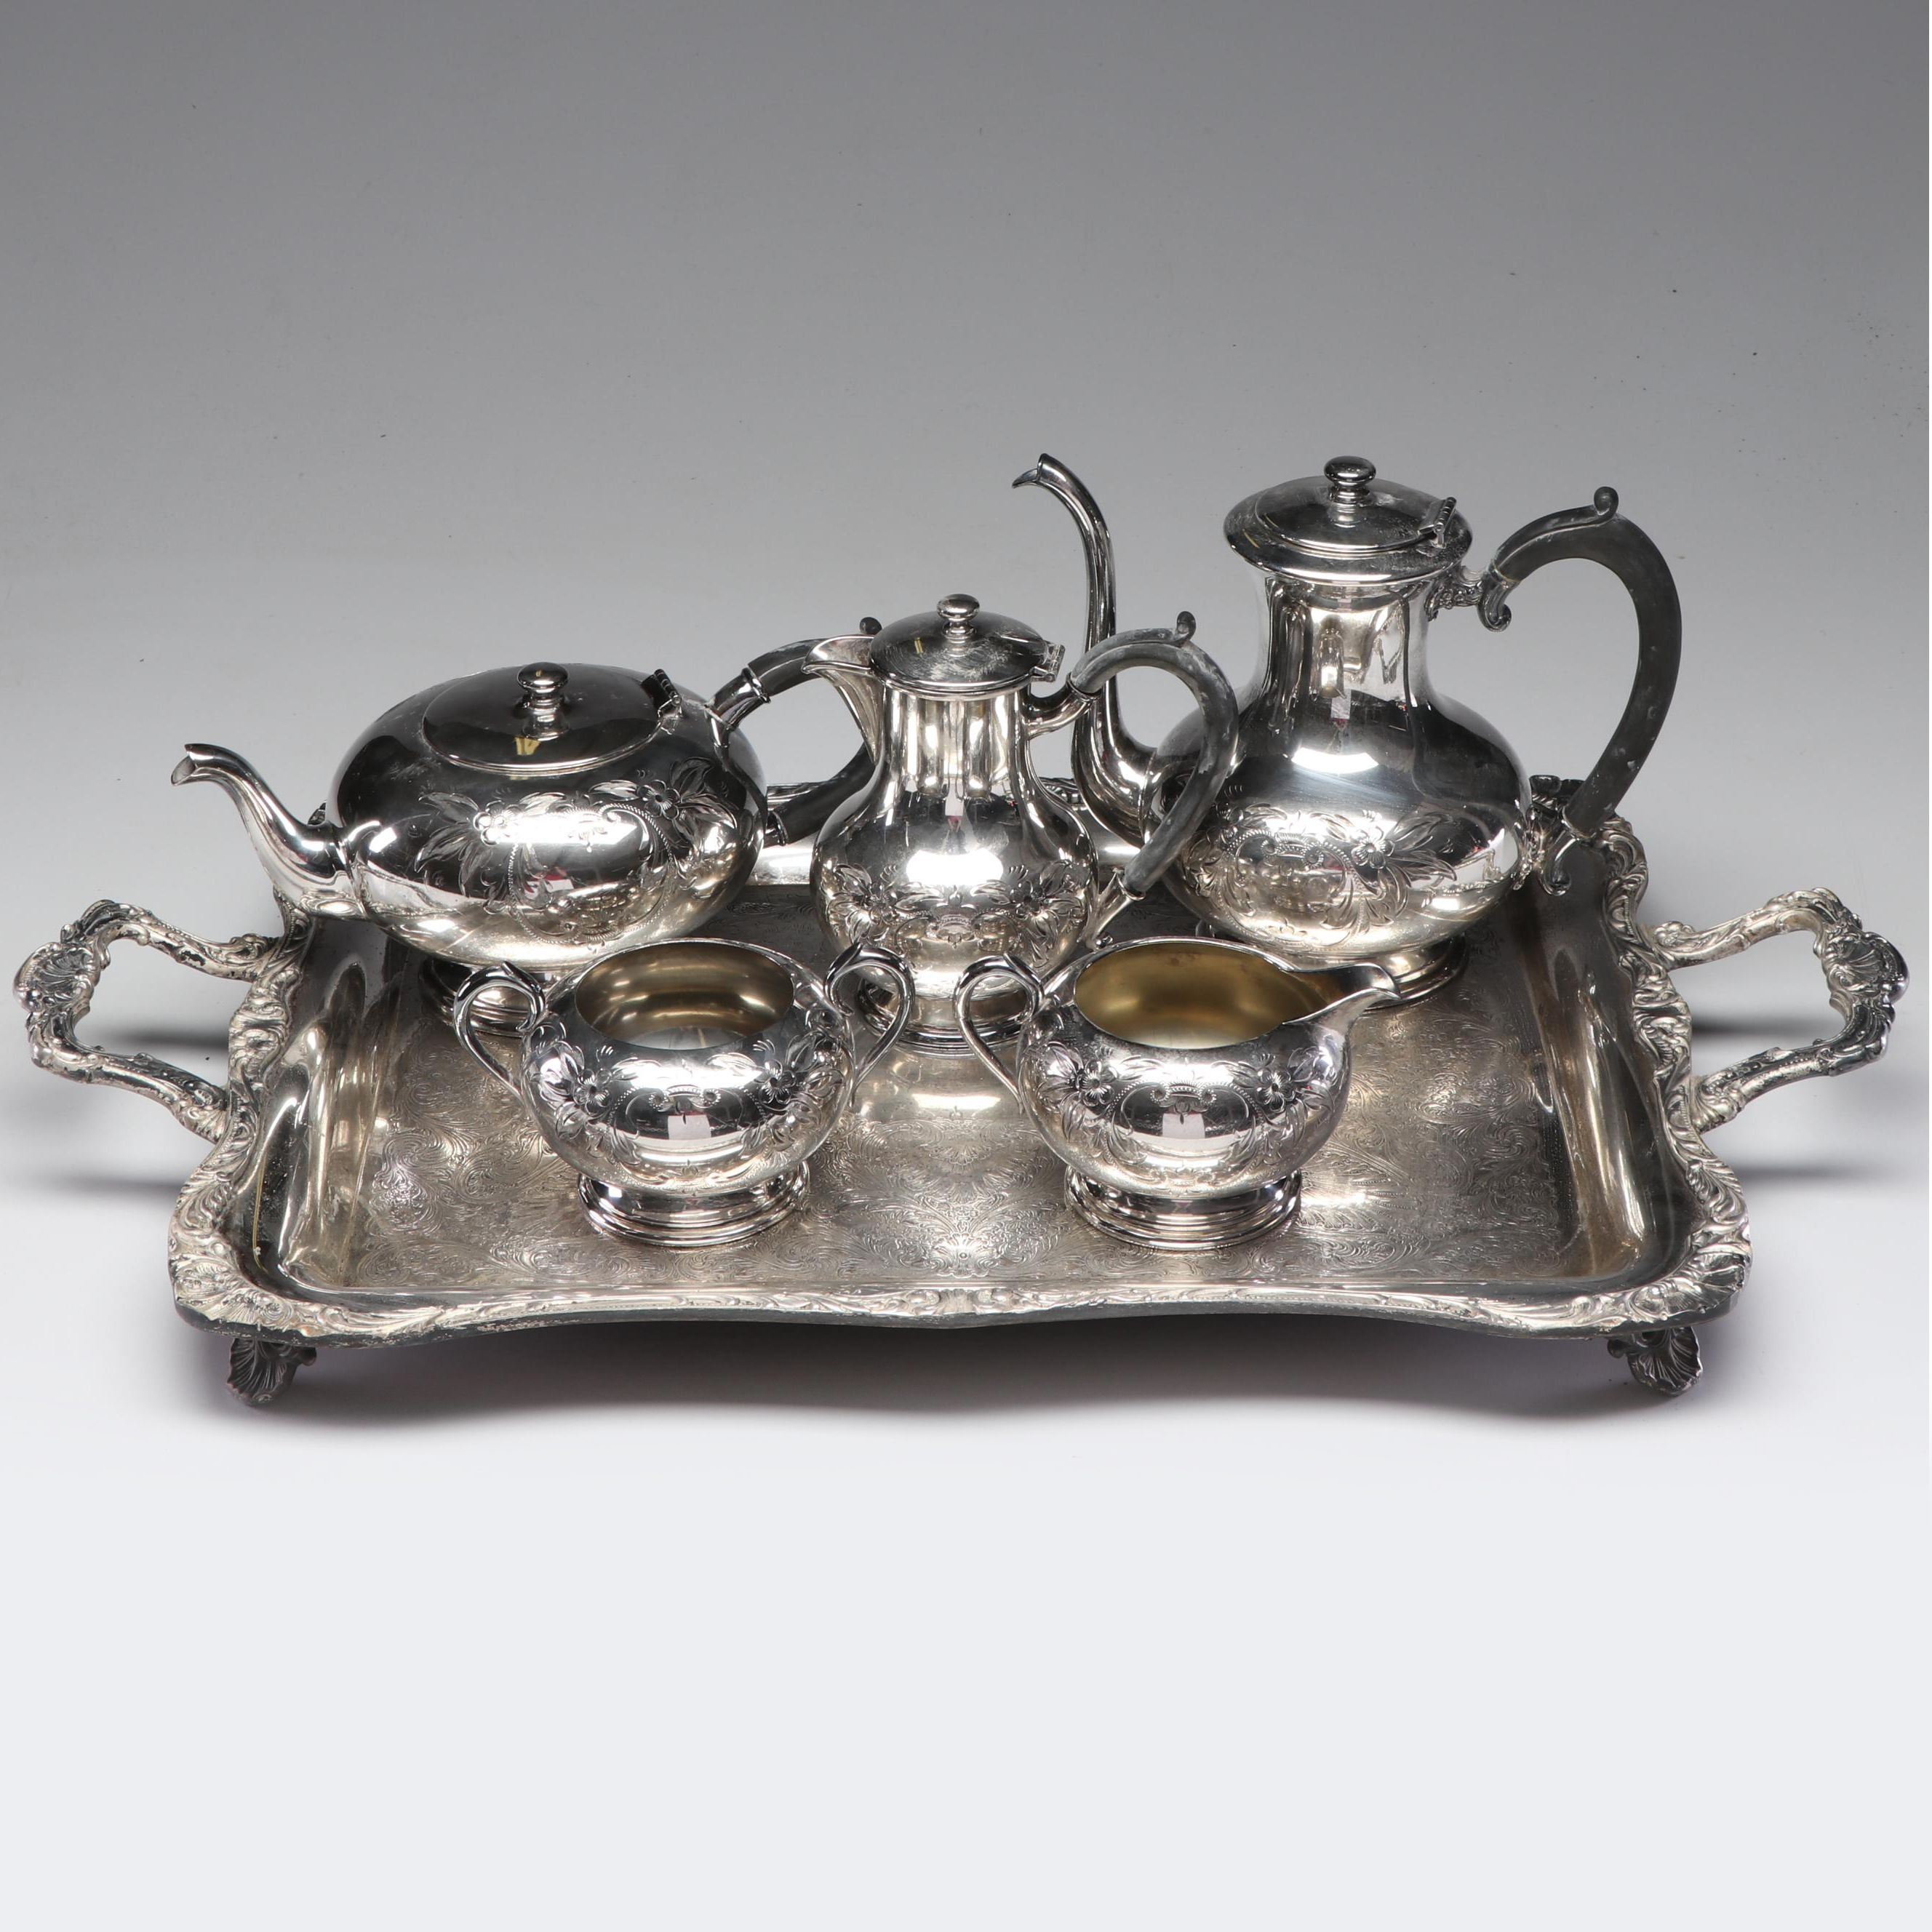 W M A. Rogers Silver Plate Tea and Coffee Serving Set